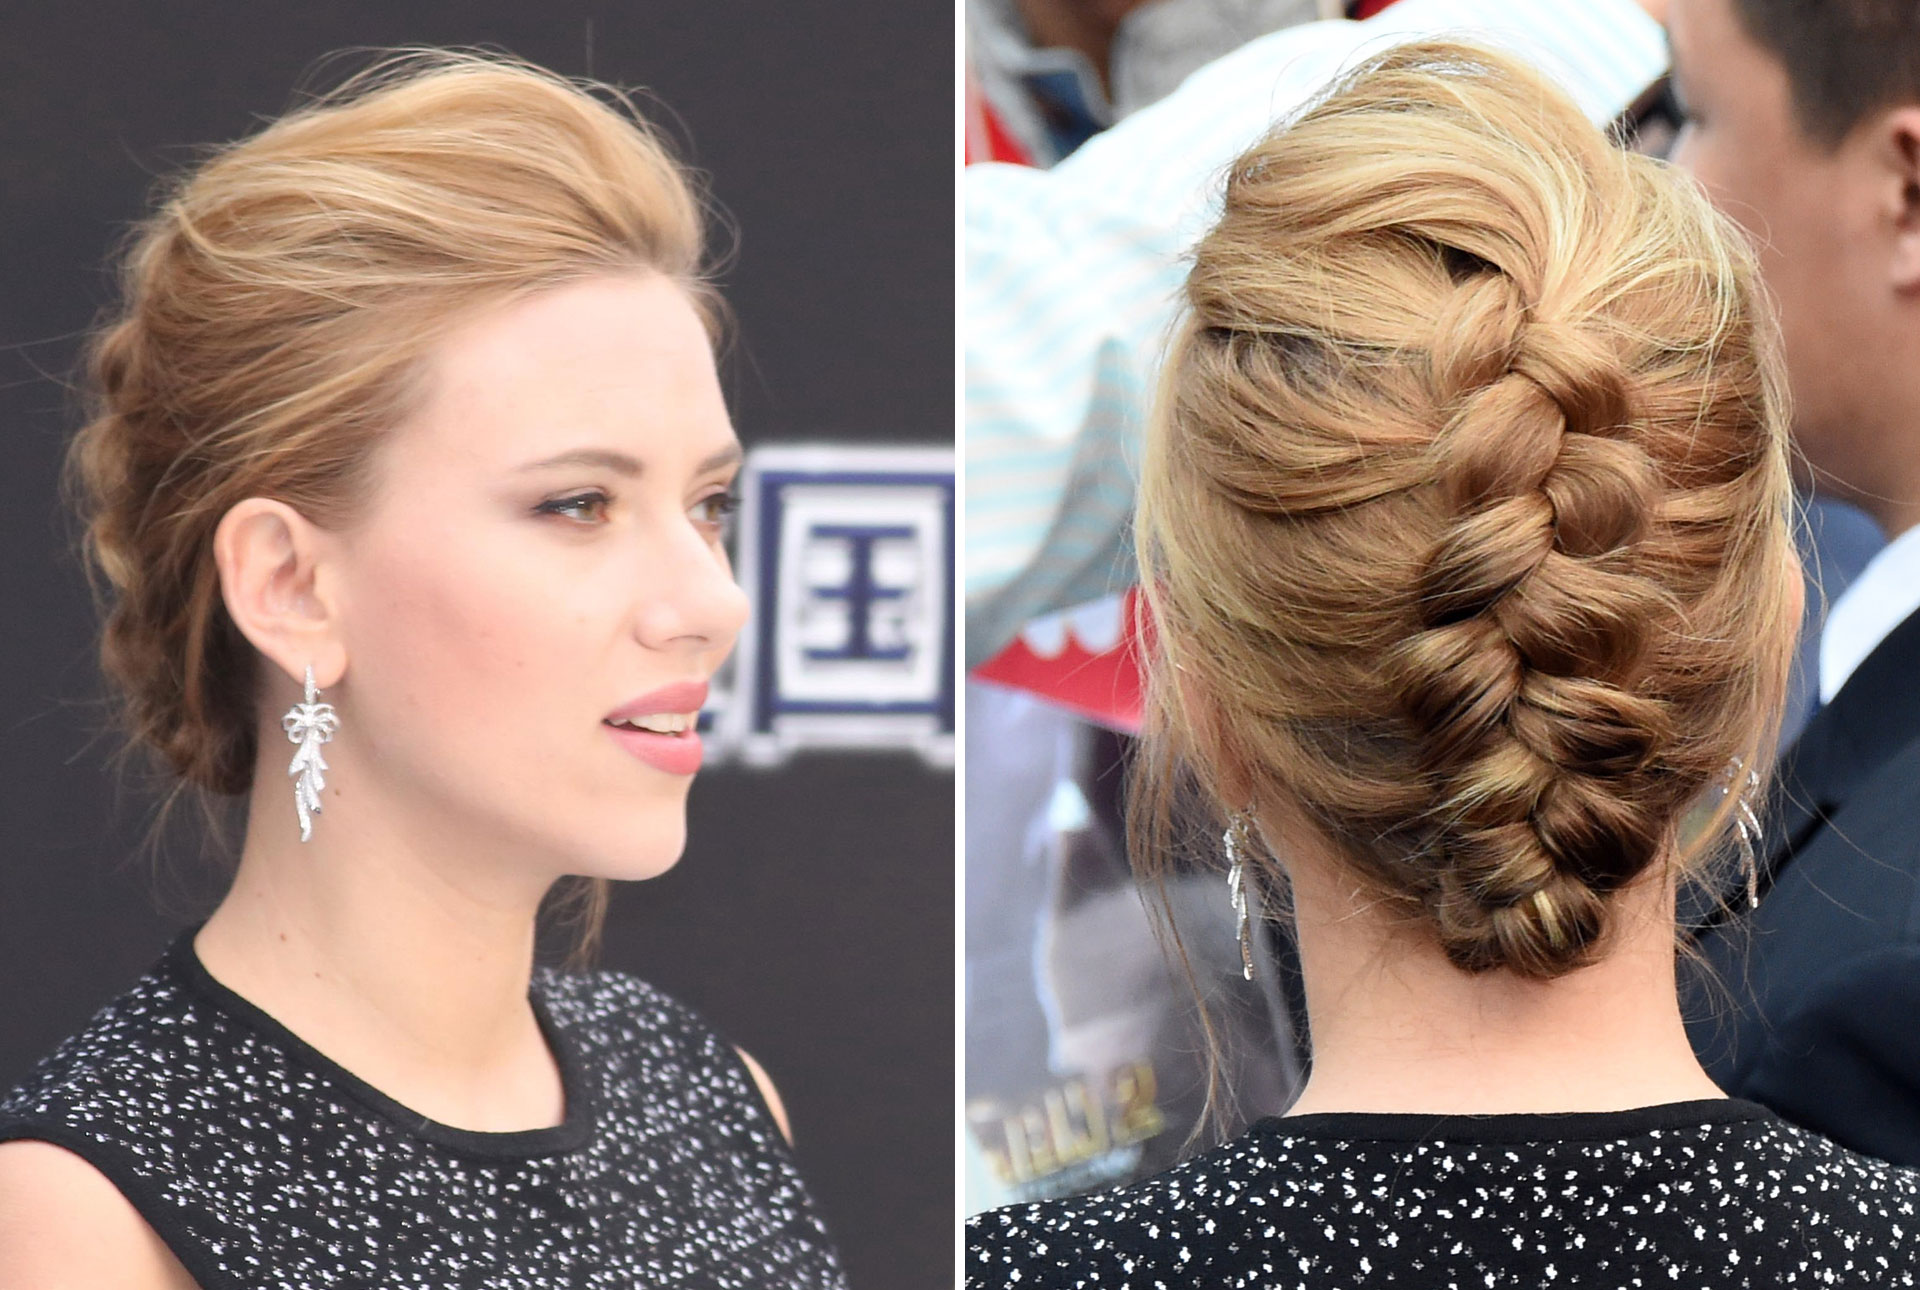 20 Easy Wedding Guest Hairstyles - Best Hair Ideas for Wedding Guests